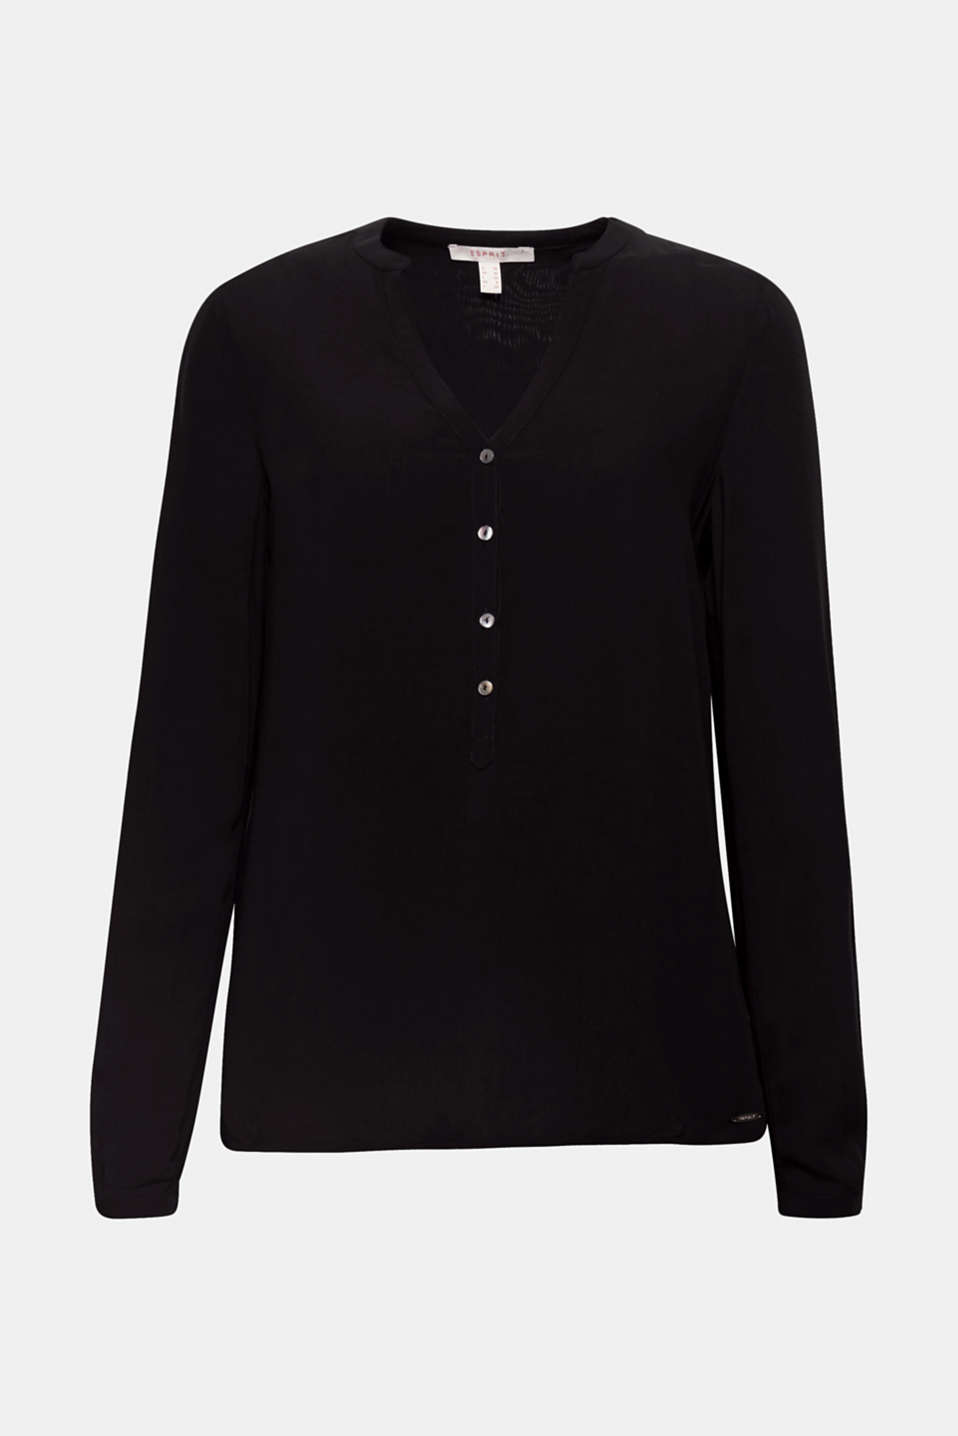 Henley blouse with turn-up sleeves, BLACK, detail image number 6